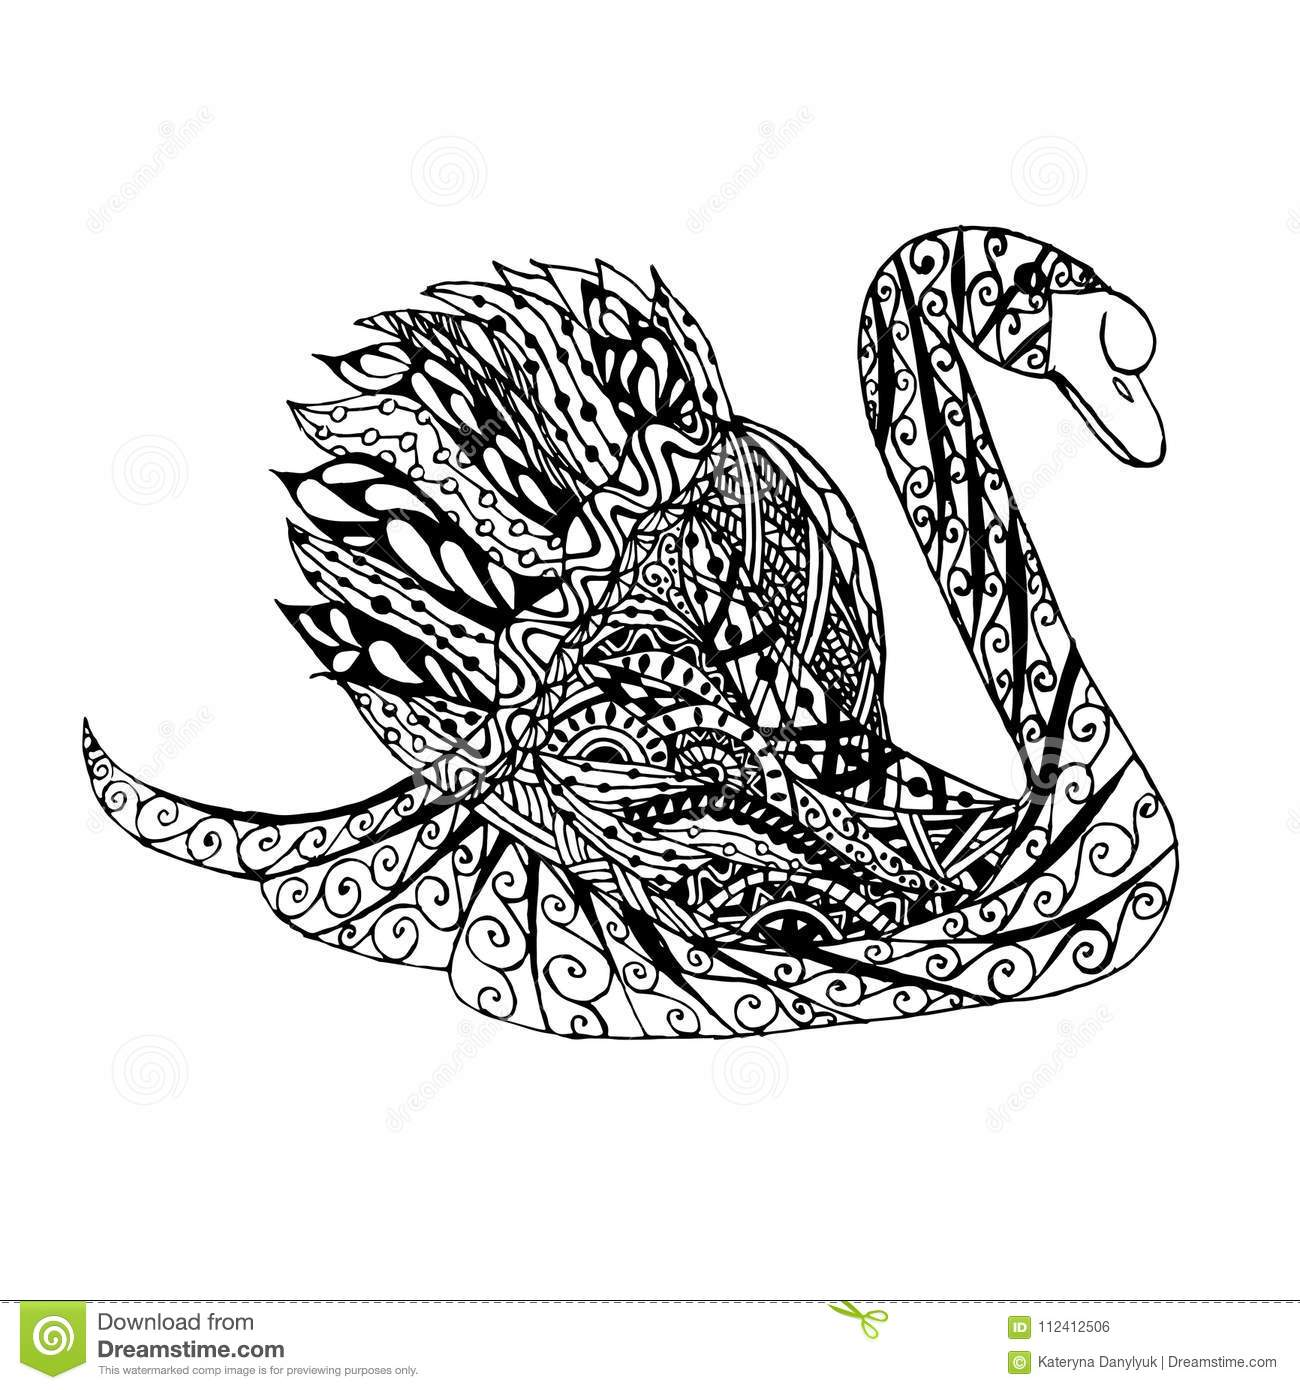 zentangle style swan monochrome sketch coloring page antistress stock vector illustration zentangle style swan monochrome sketch